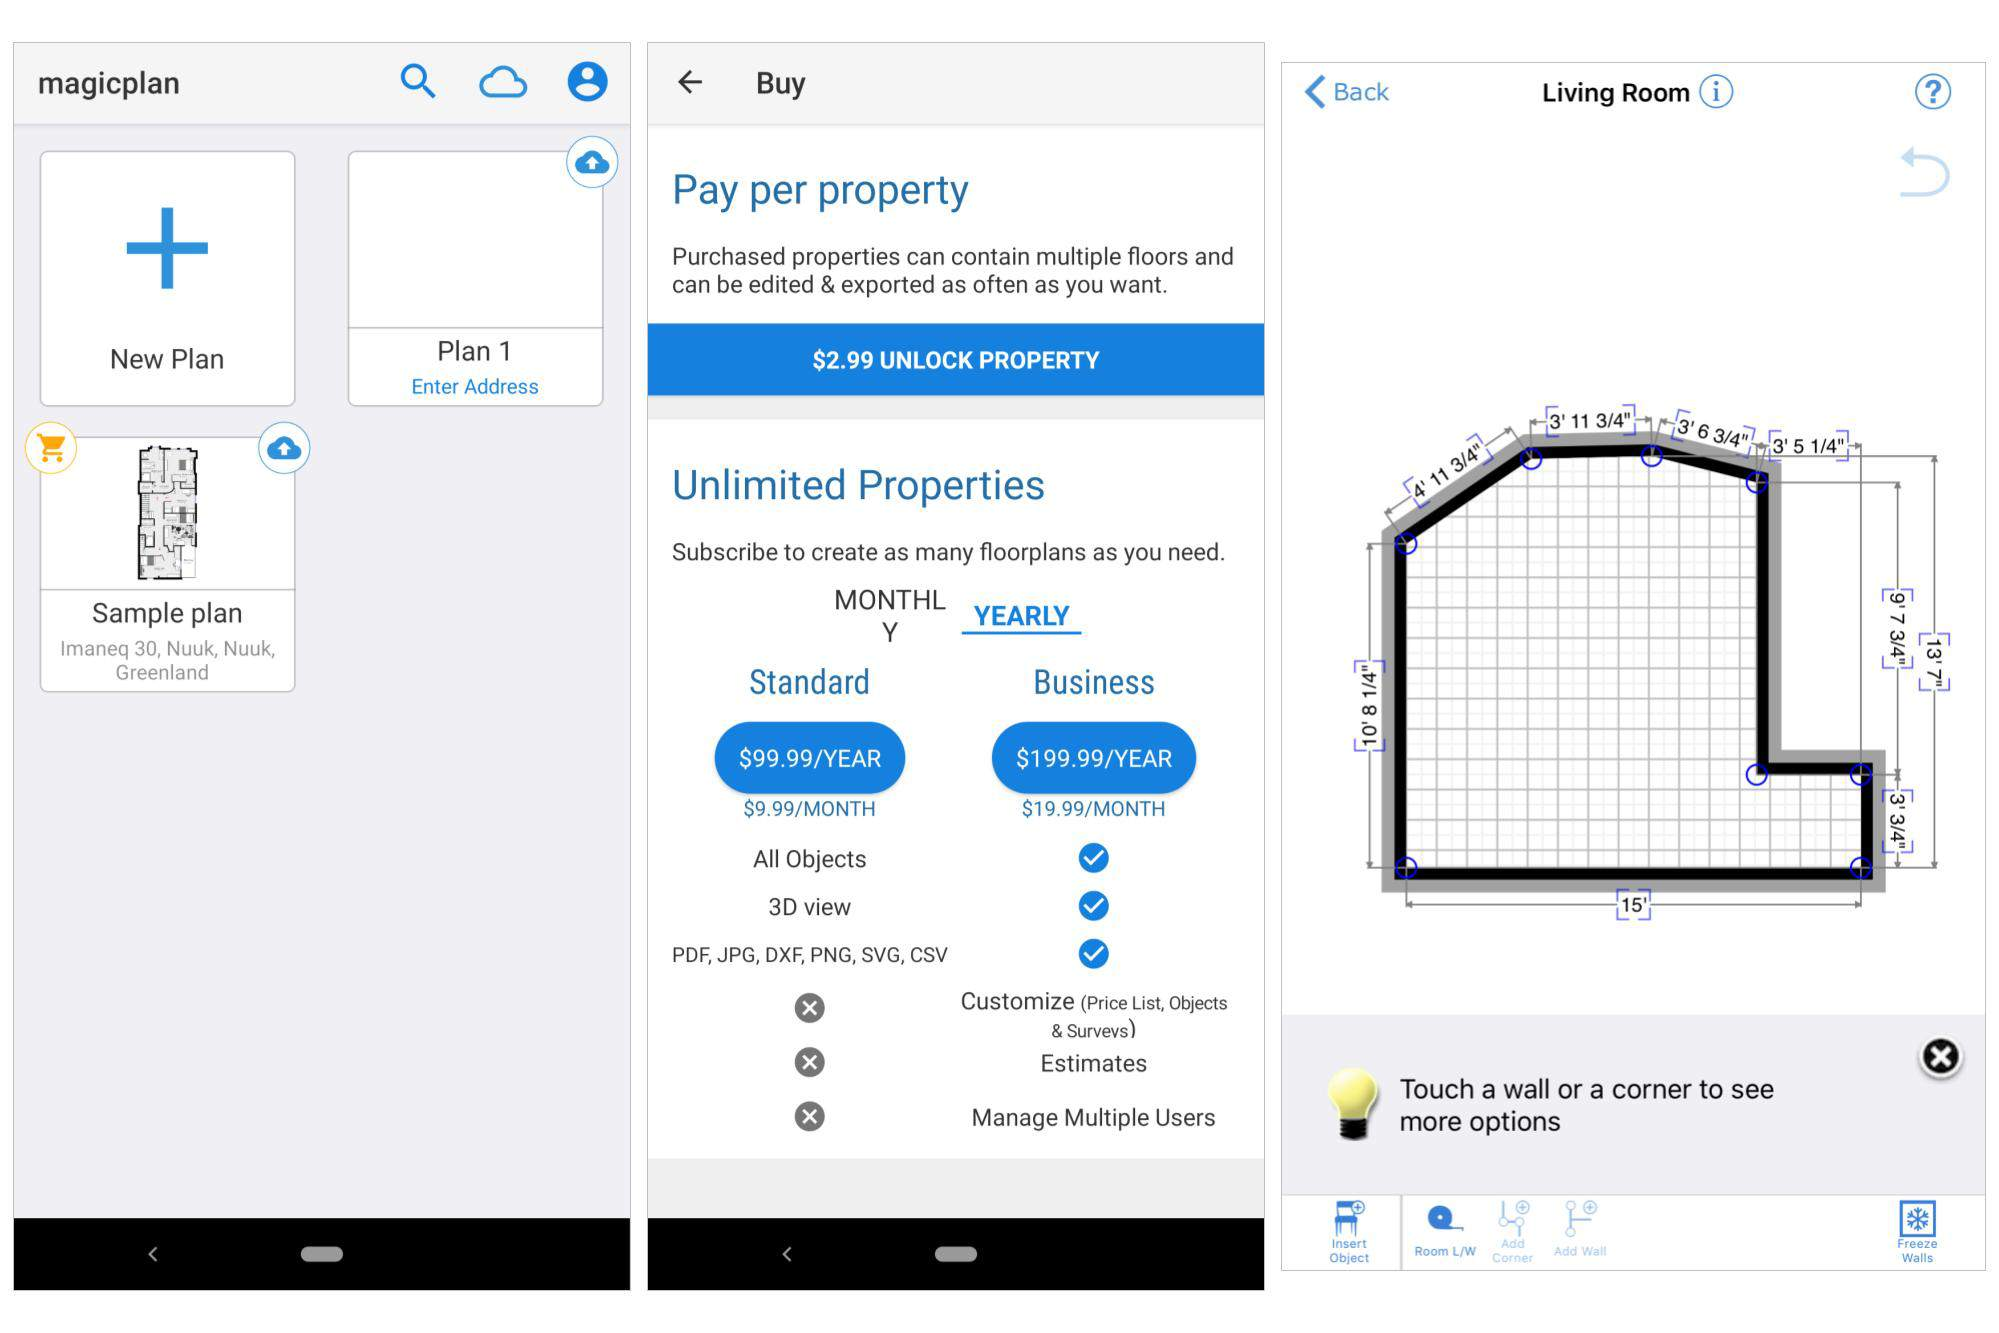 3 screenshots: Initial magicplan screen, showing plans; Pricing detail screen for upgrades; Sample floor plan after scan.